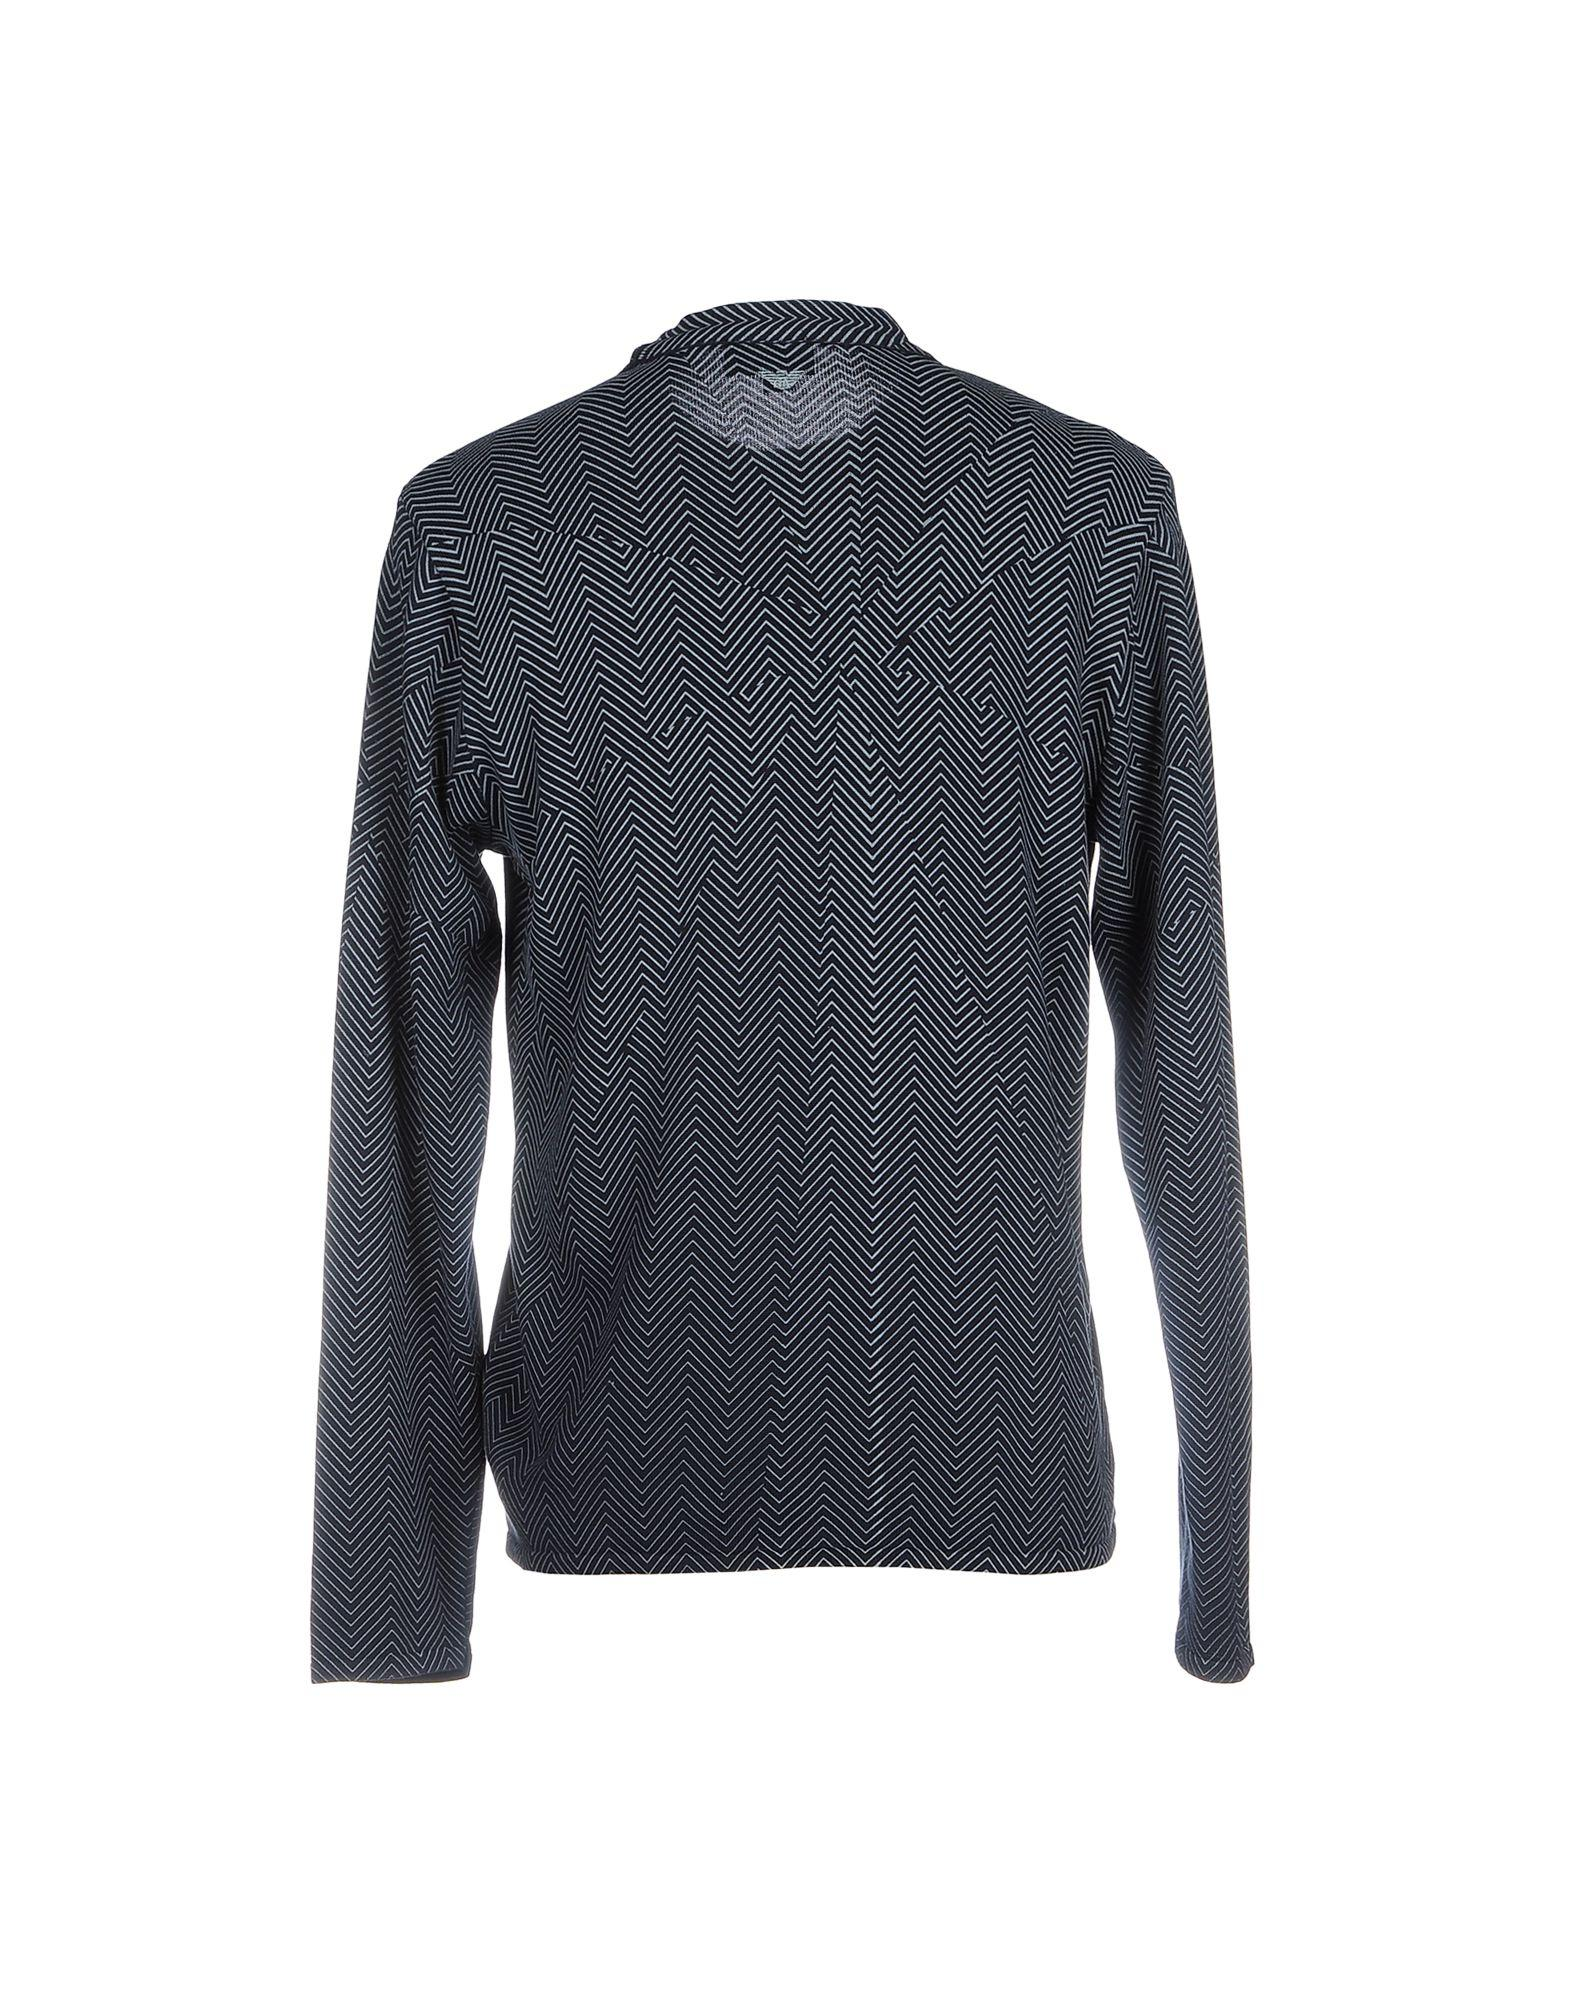 lyst emporio armani sweater in blue for men. Black Bedroom Furniture Sets. Home Design Ideas